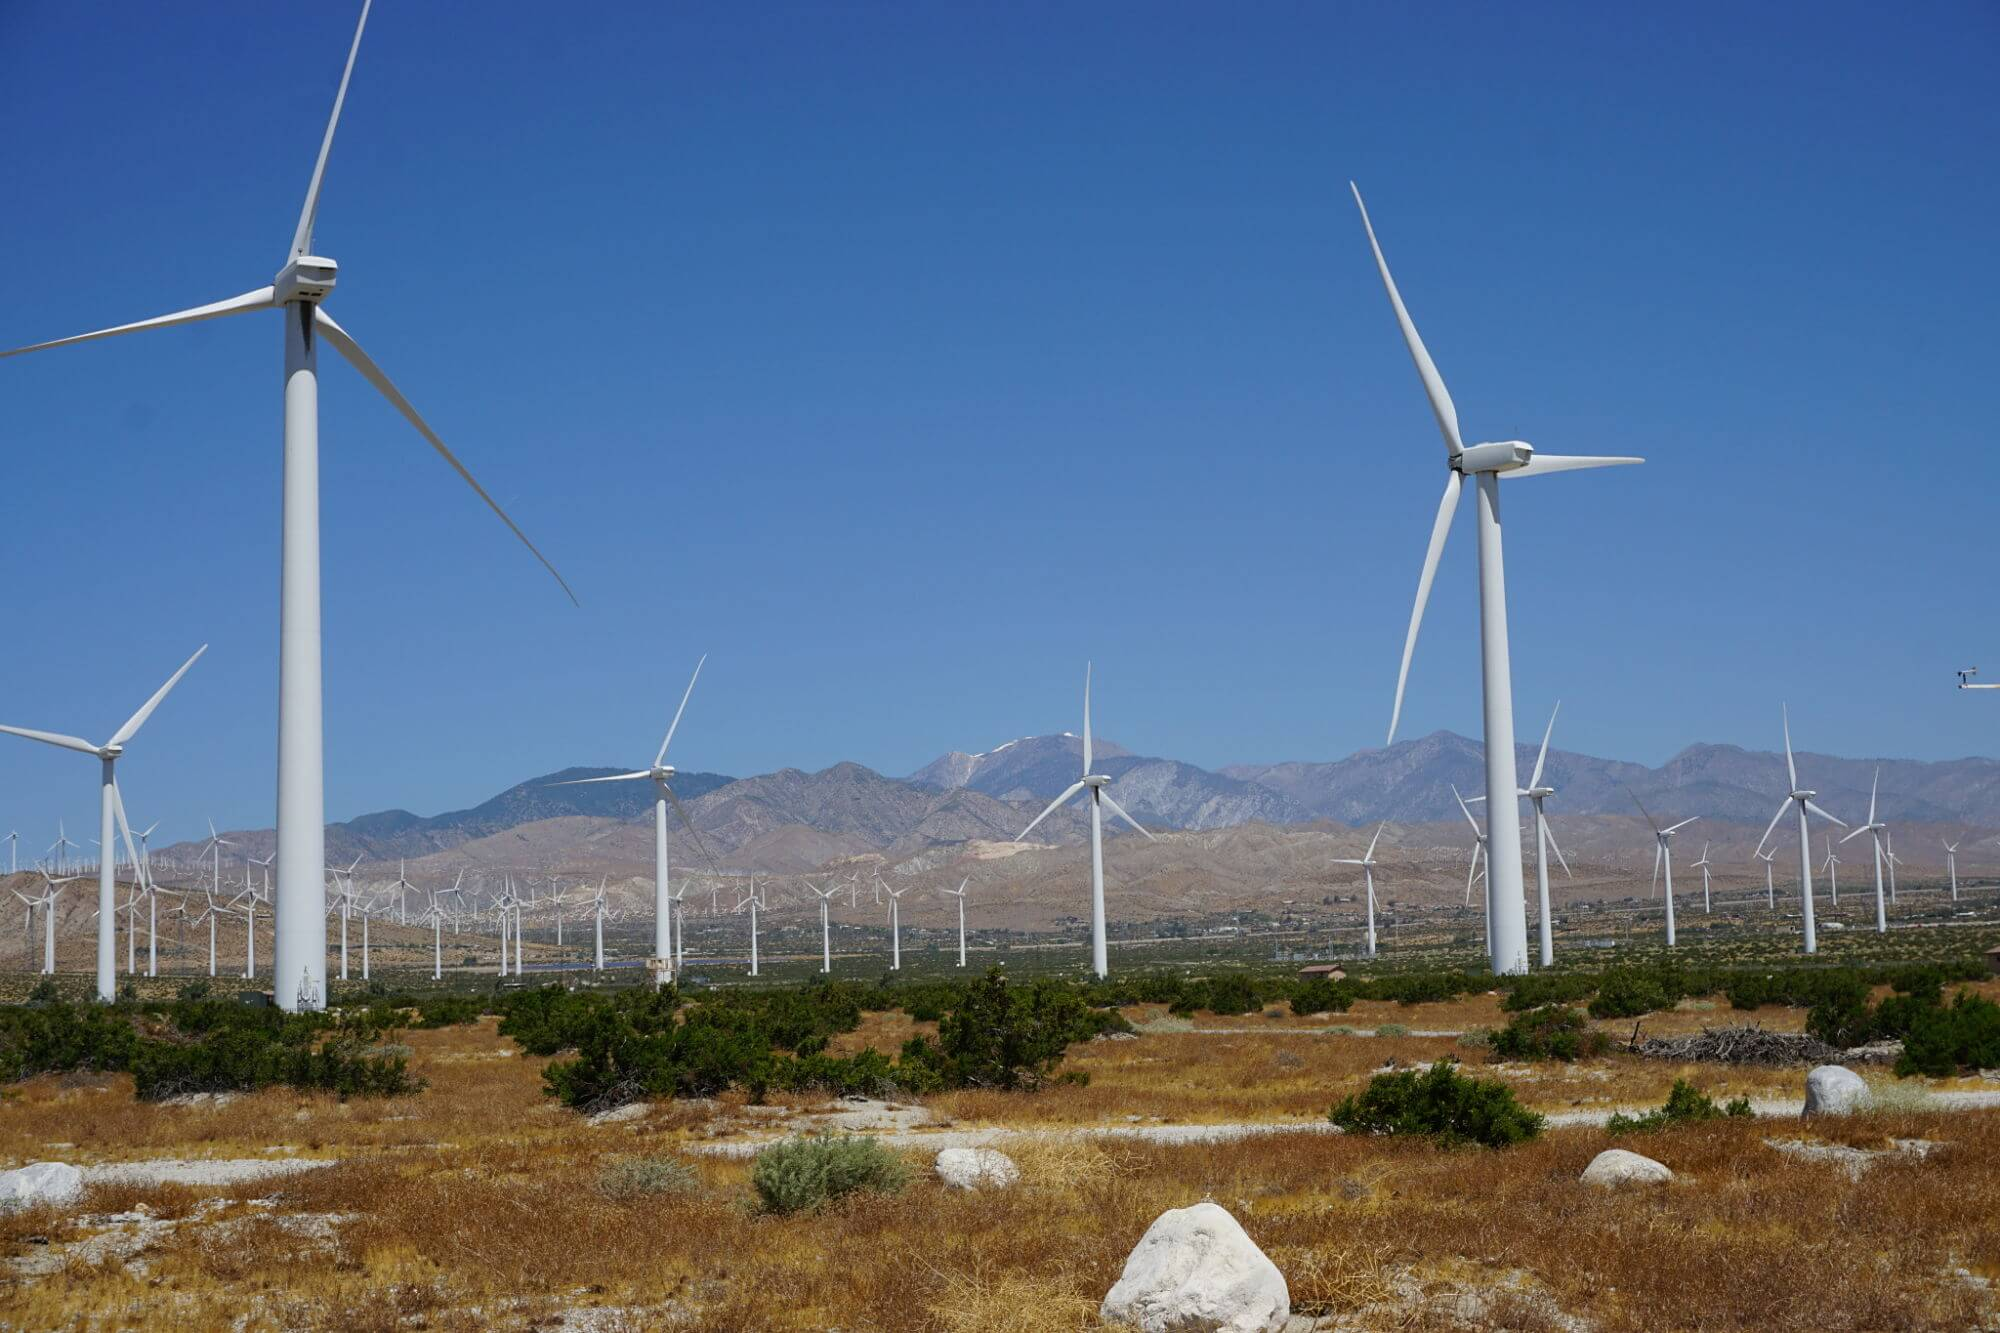 Palm Springs Windmills tour